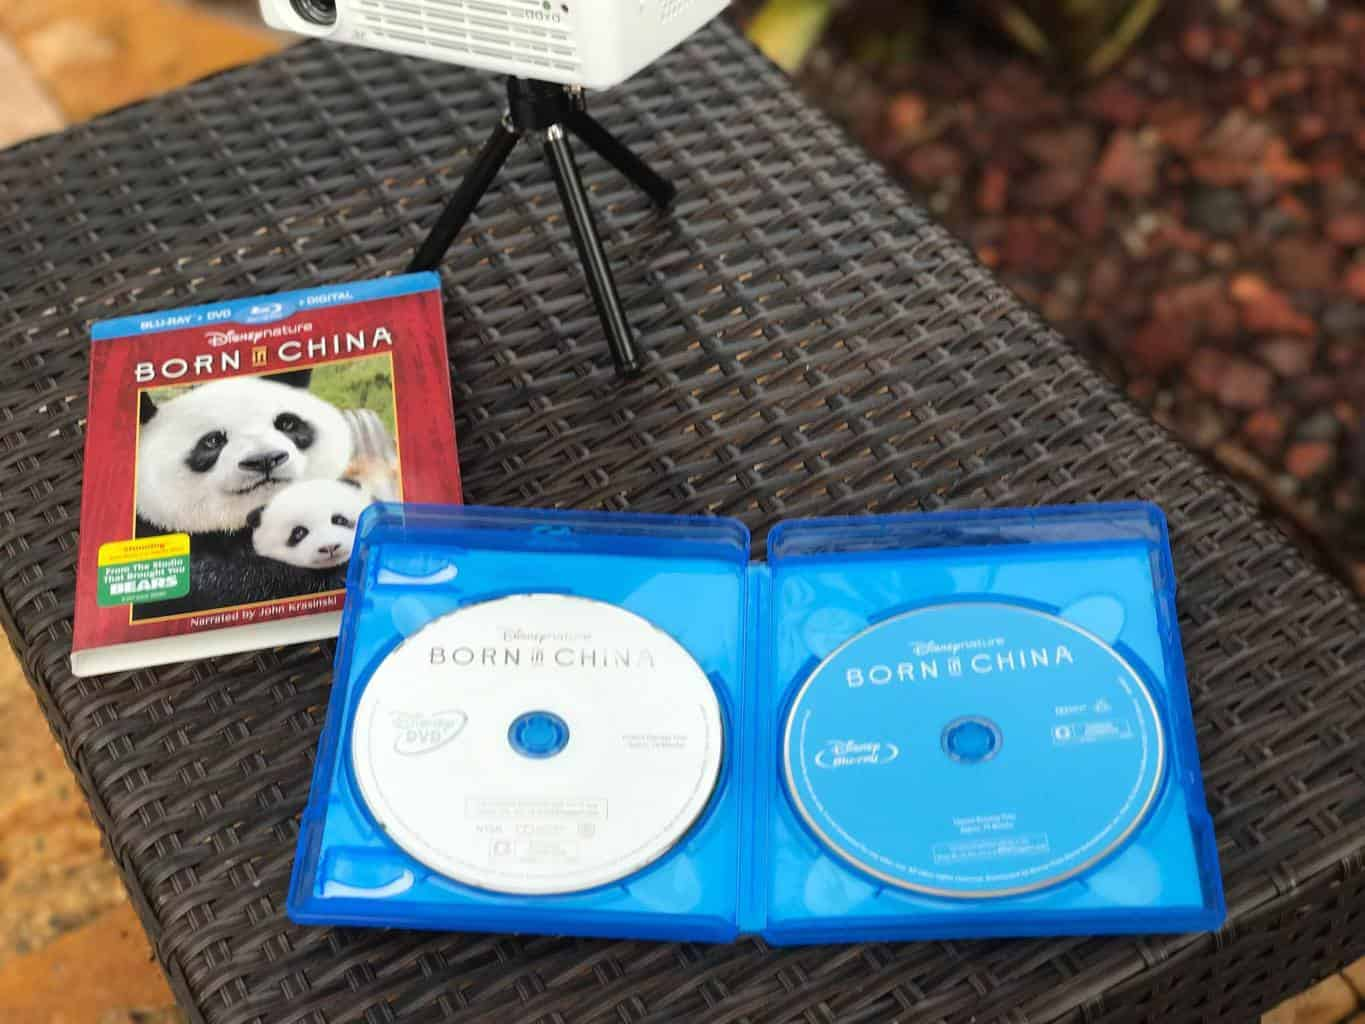 Disneynature BORN IN CHINA, blu-ray dvd